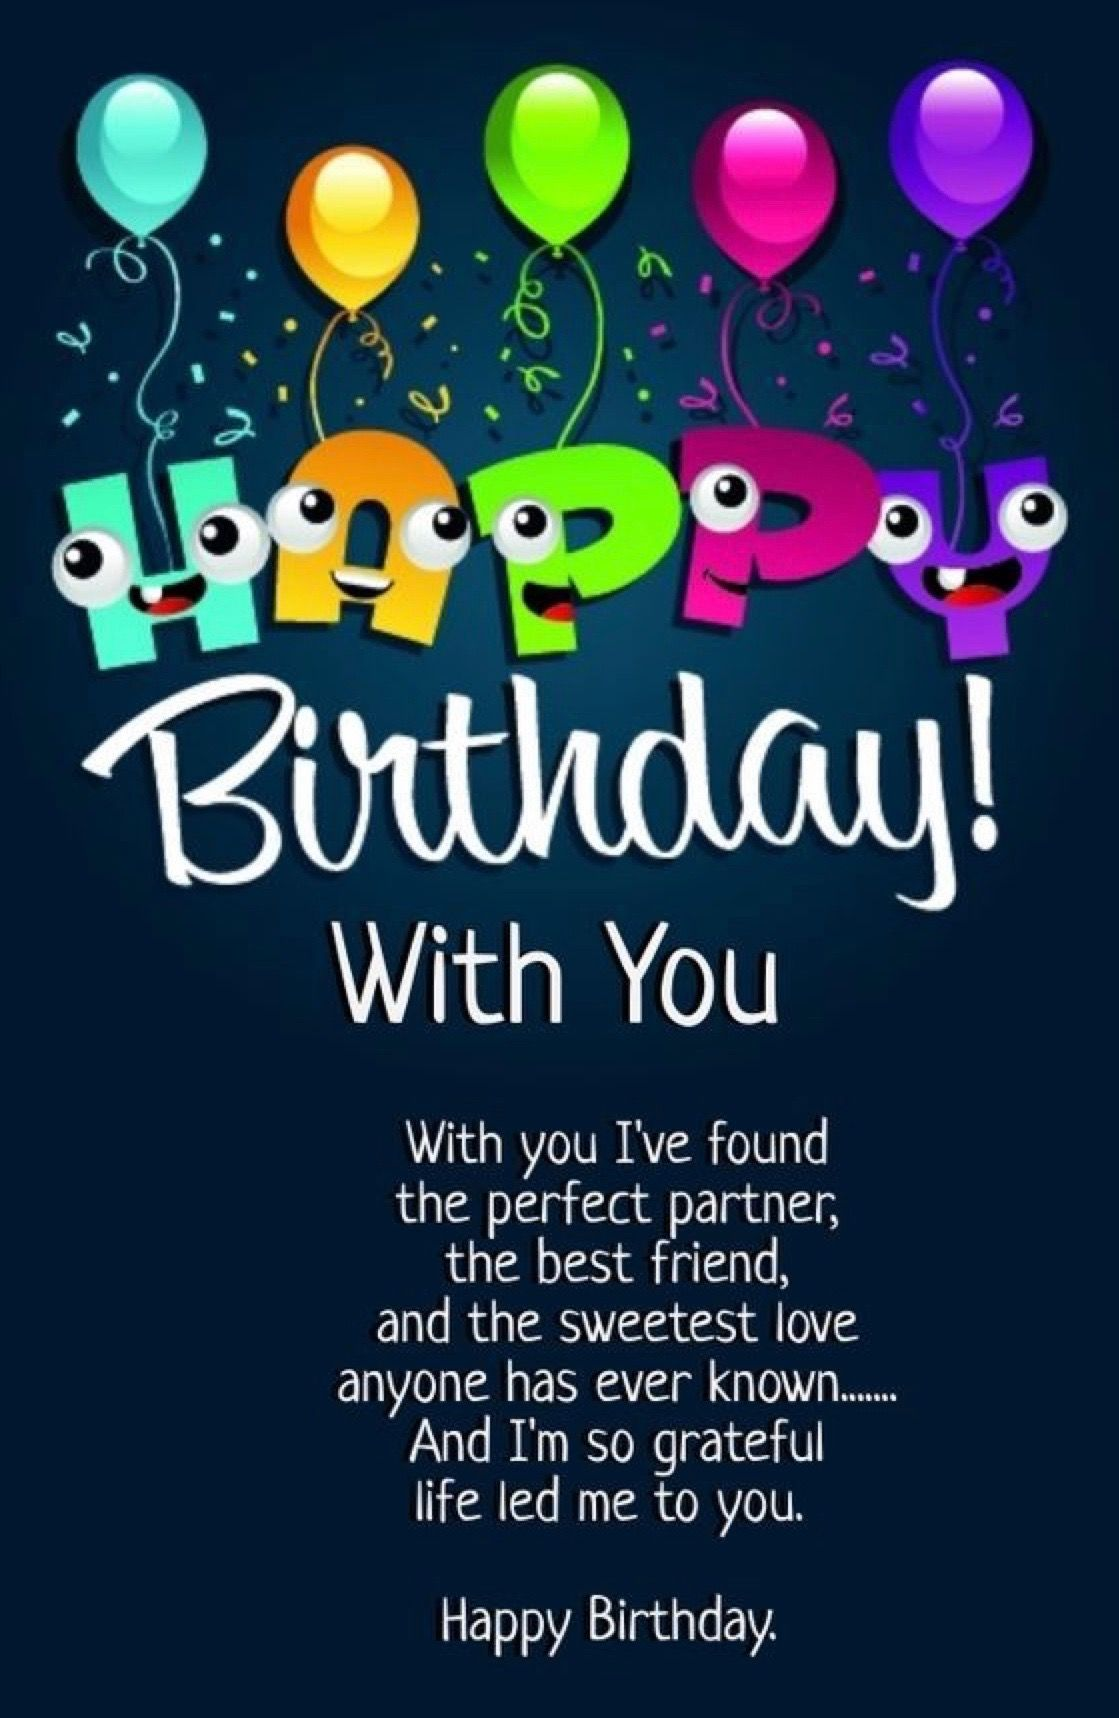 Pin by Gina Nel on Love / Marriage Happy birthday quotes